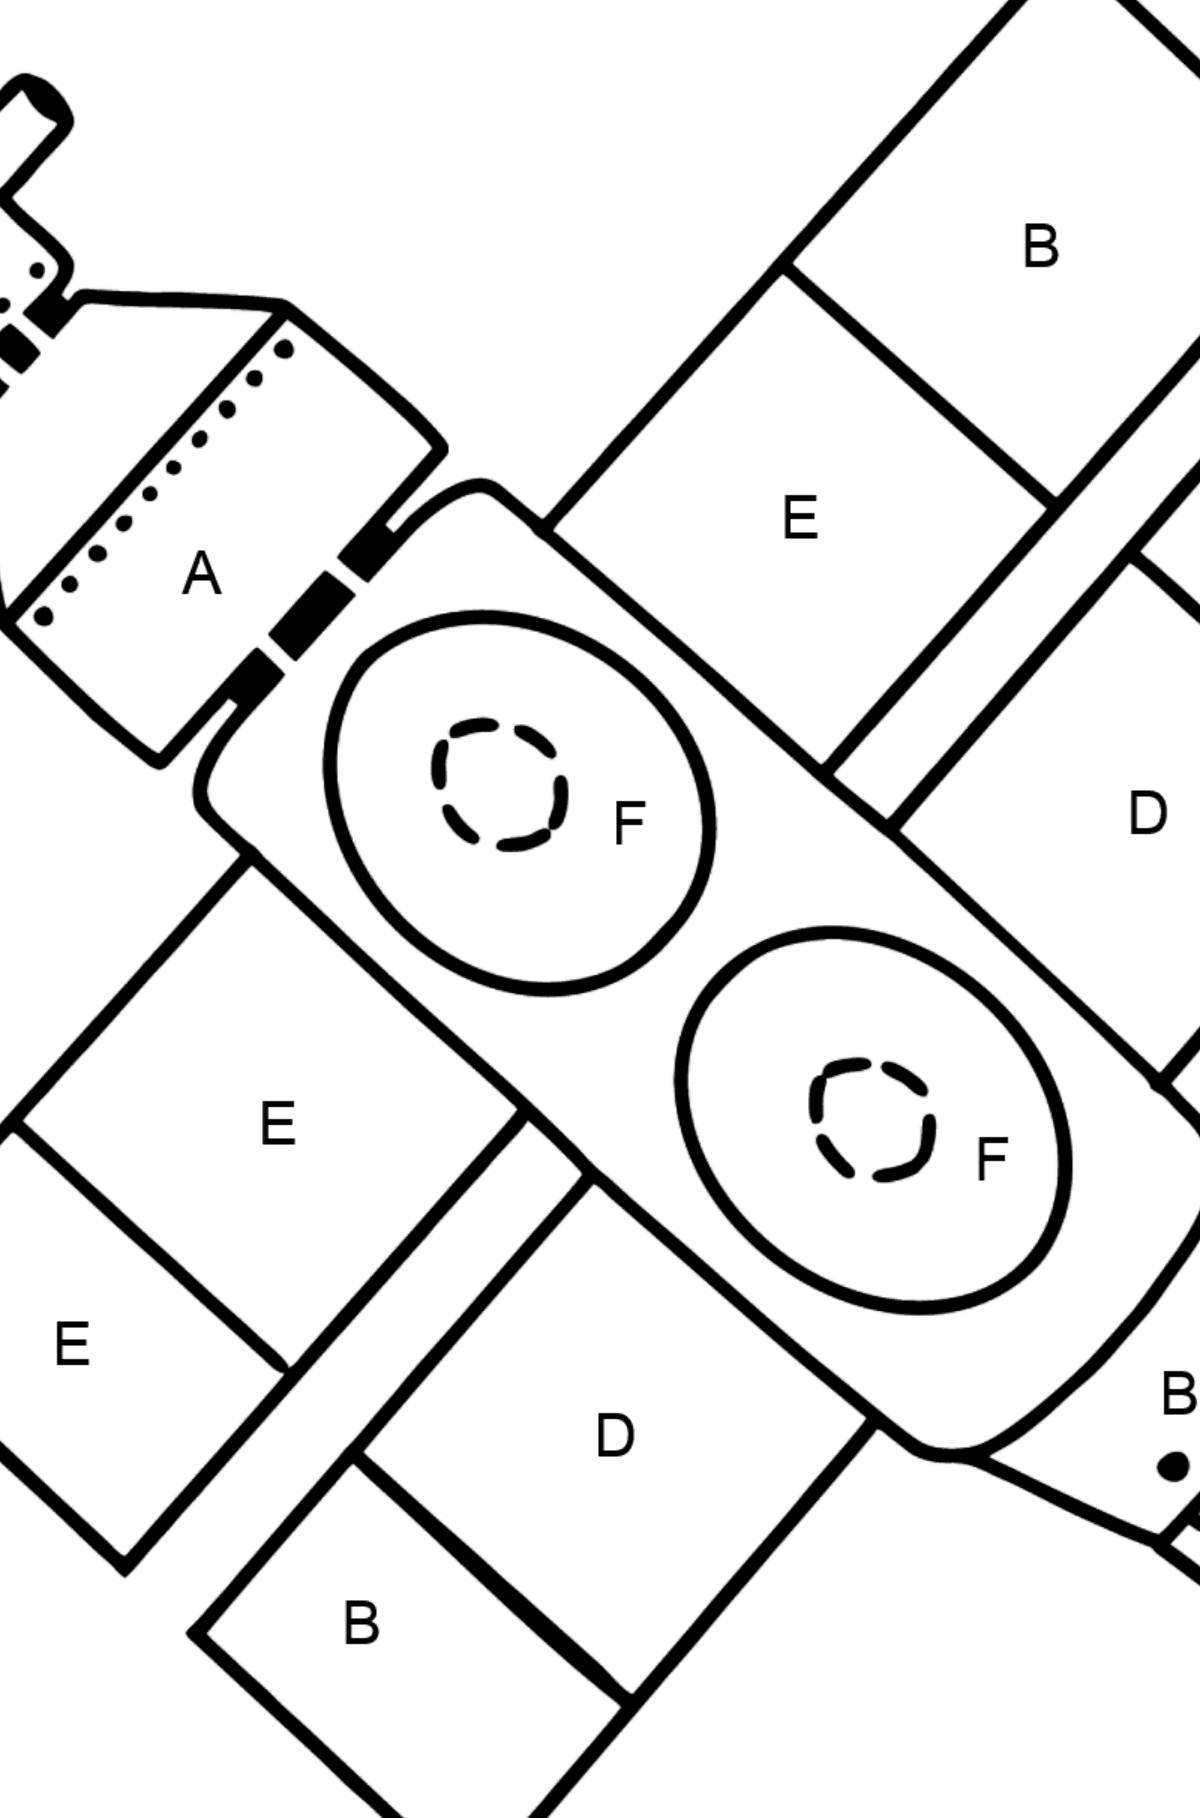 Spaceship coloring page - Coloring by Letters for Kids